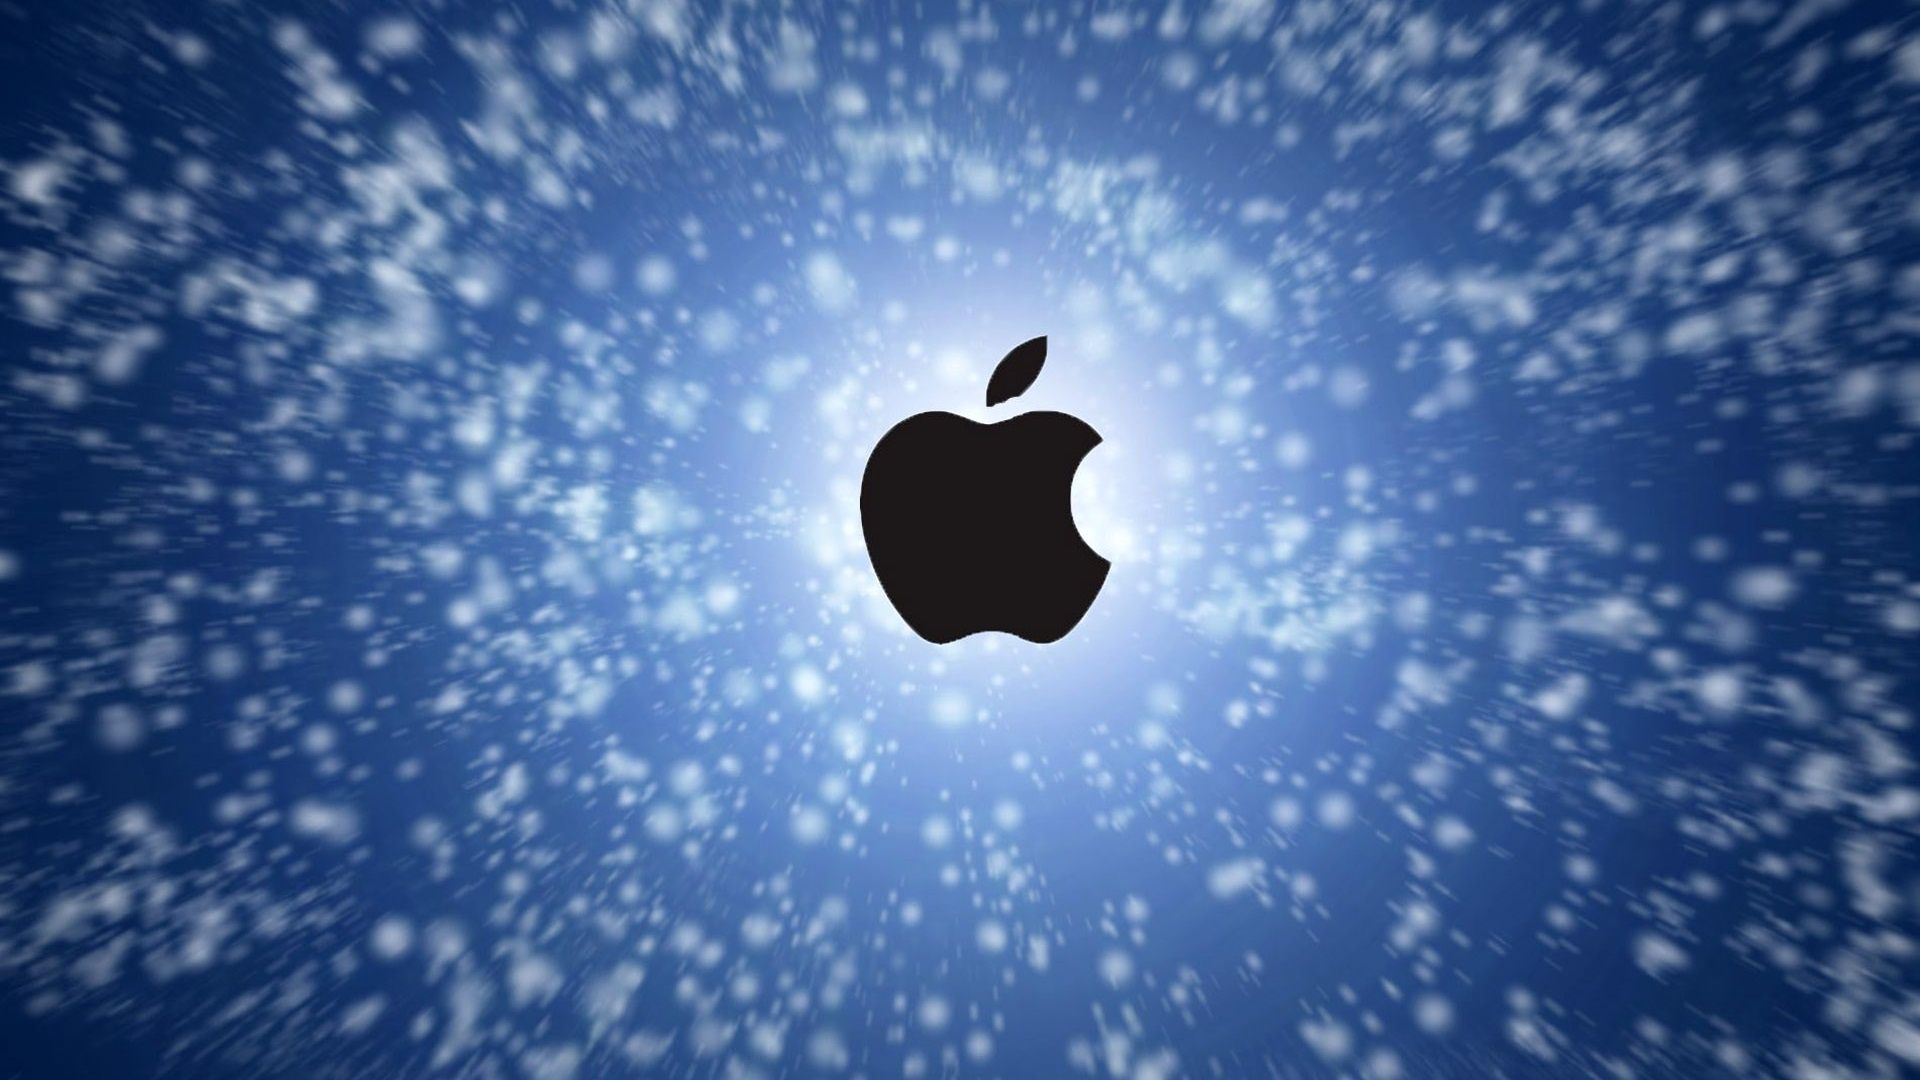 Apple Ipad background picture hd